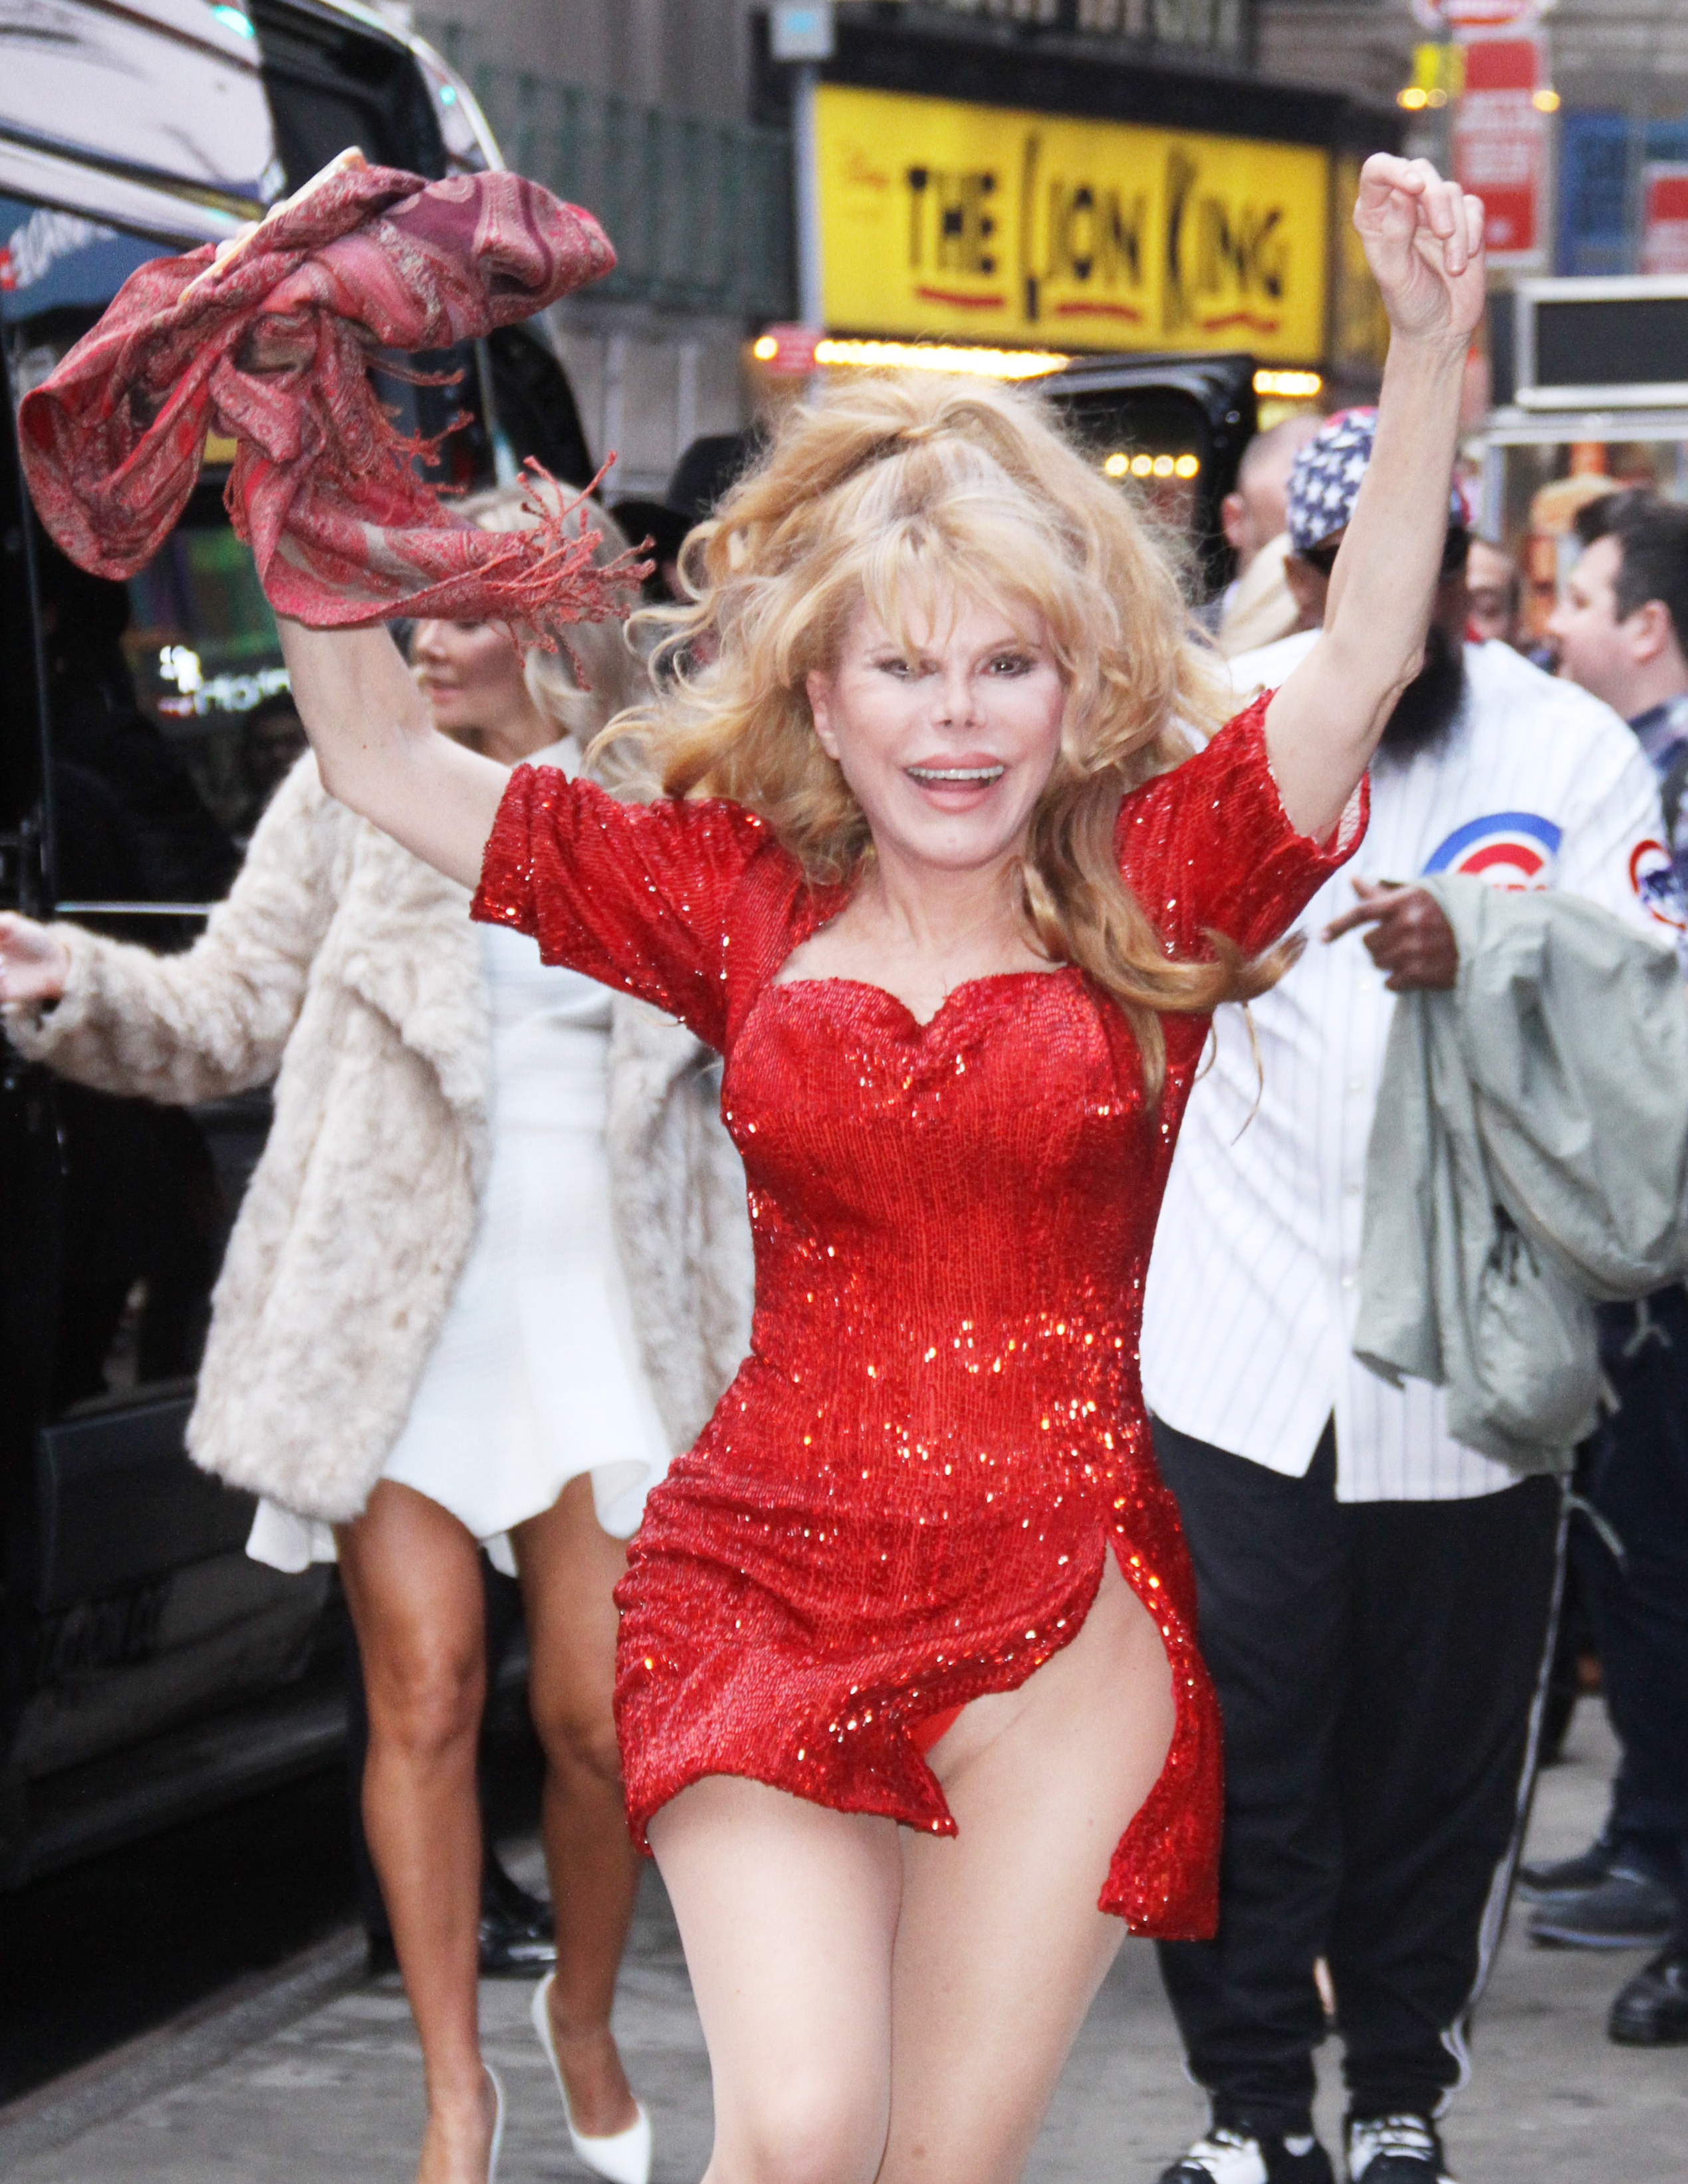 Charo Suffers Wardrobe Malfunction As She Jumps For Joy In A Skimpy Red Dress At GMA